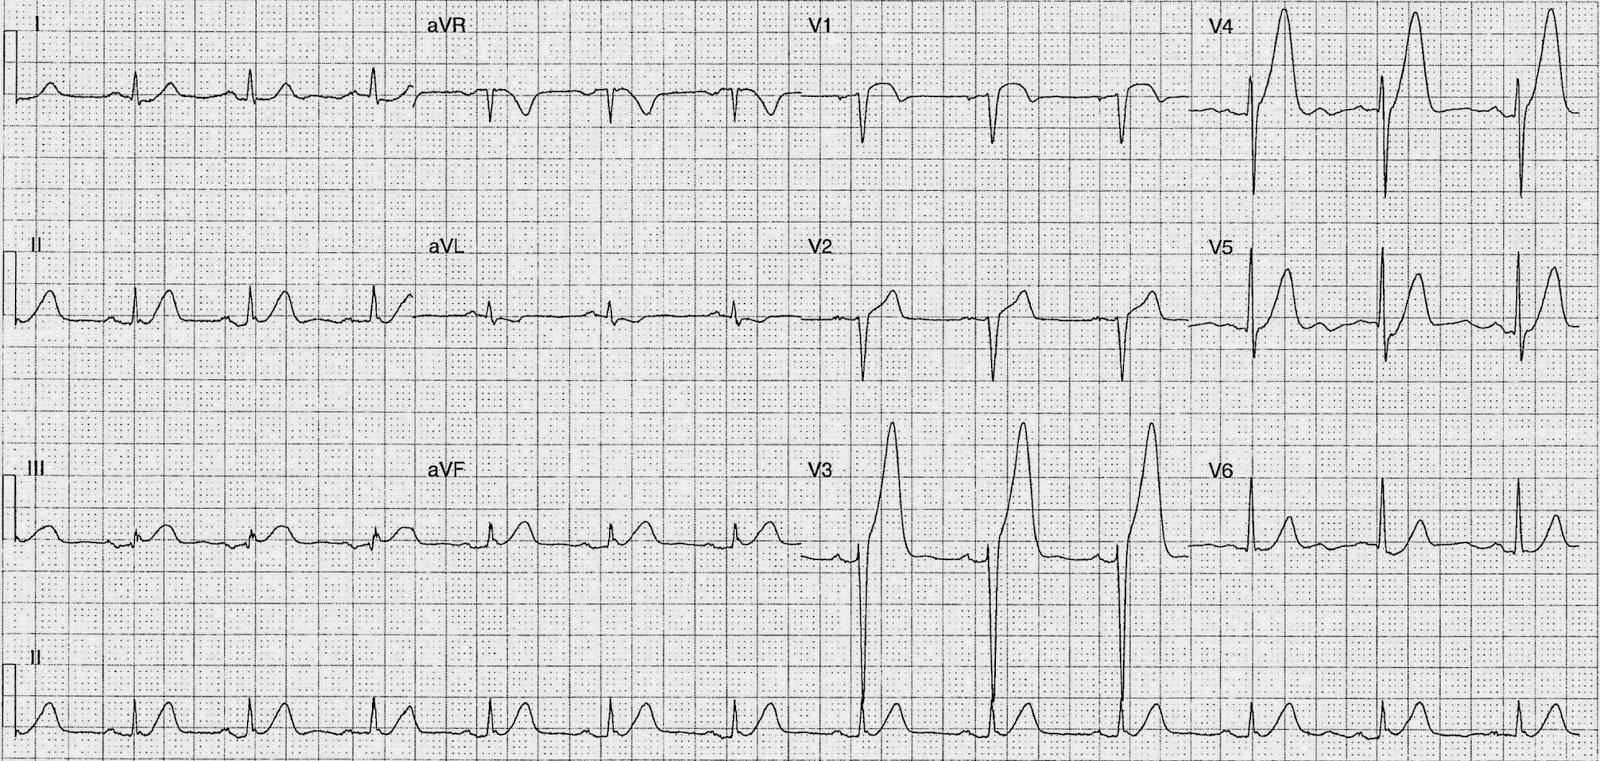 ecg of the week archives - page 99 of 190